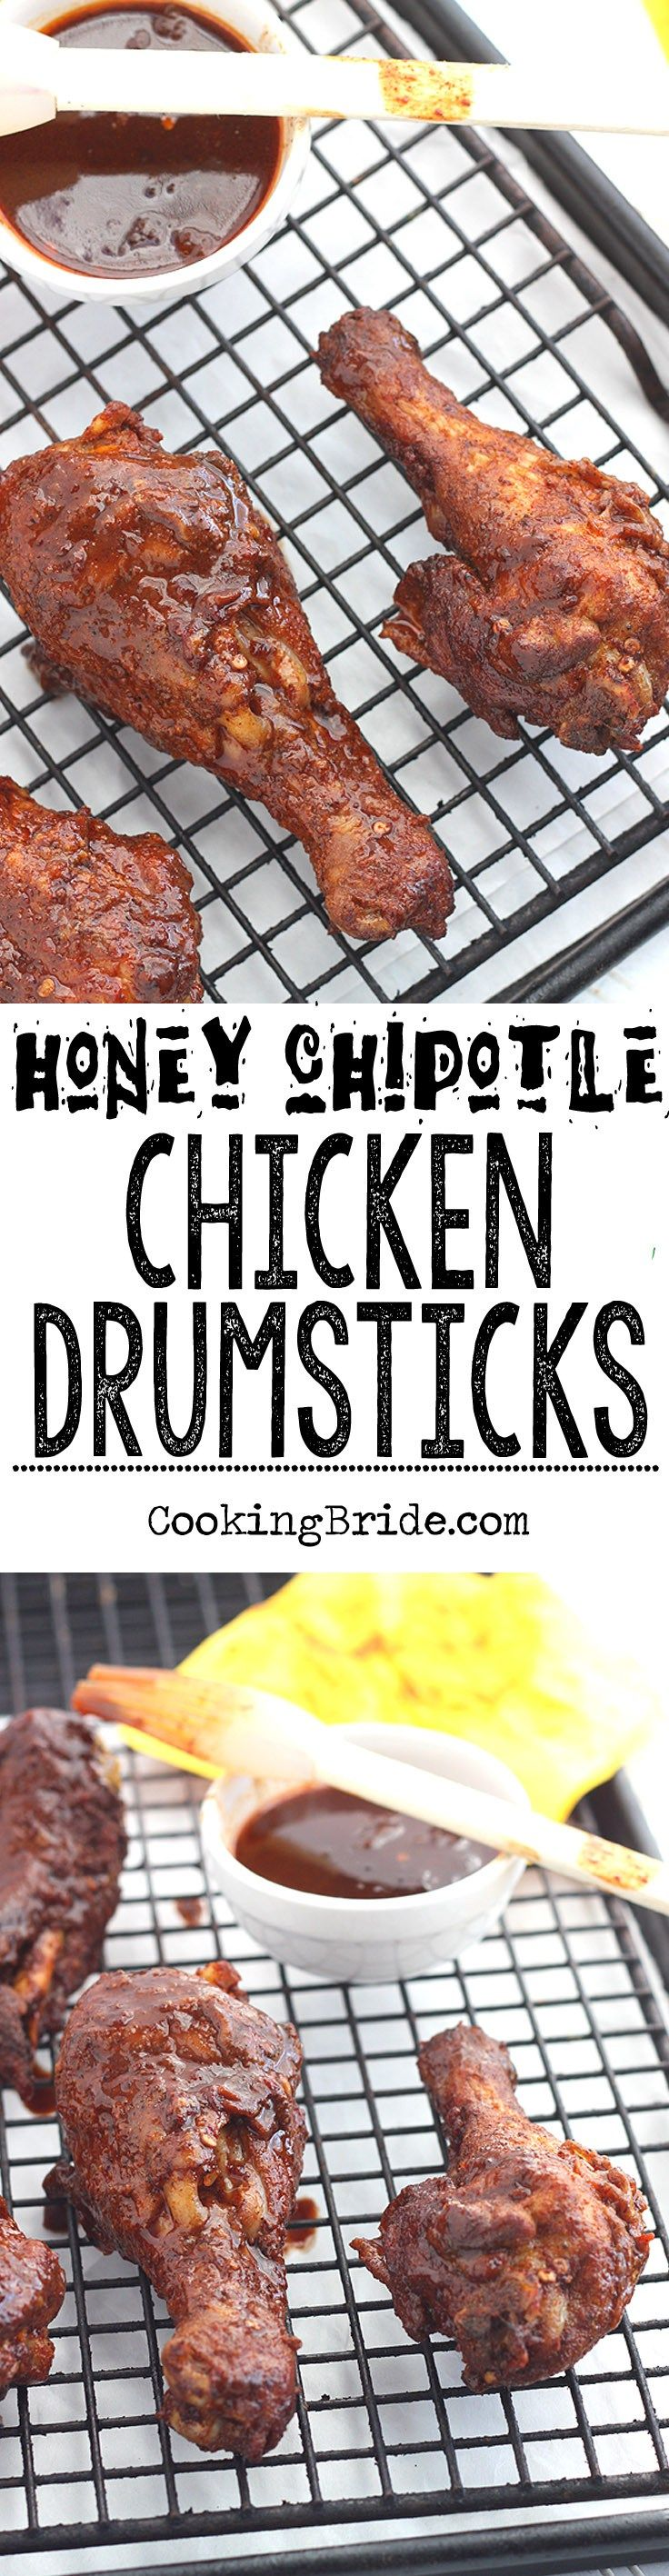 Honey chipotle chicken drumsticks recipe with images